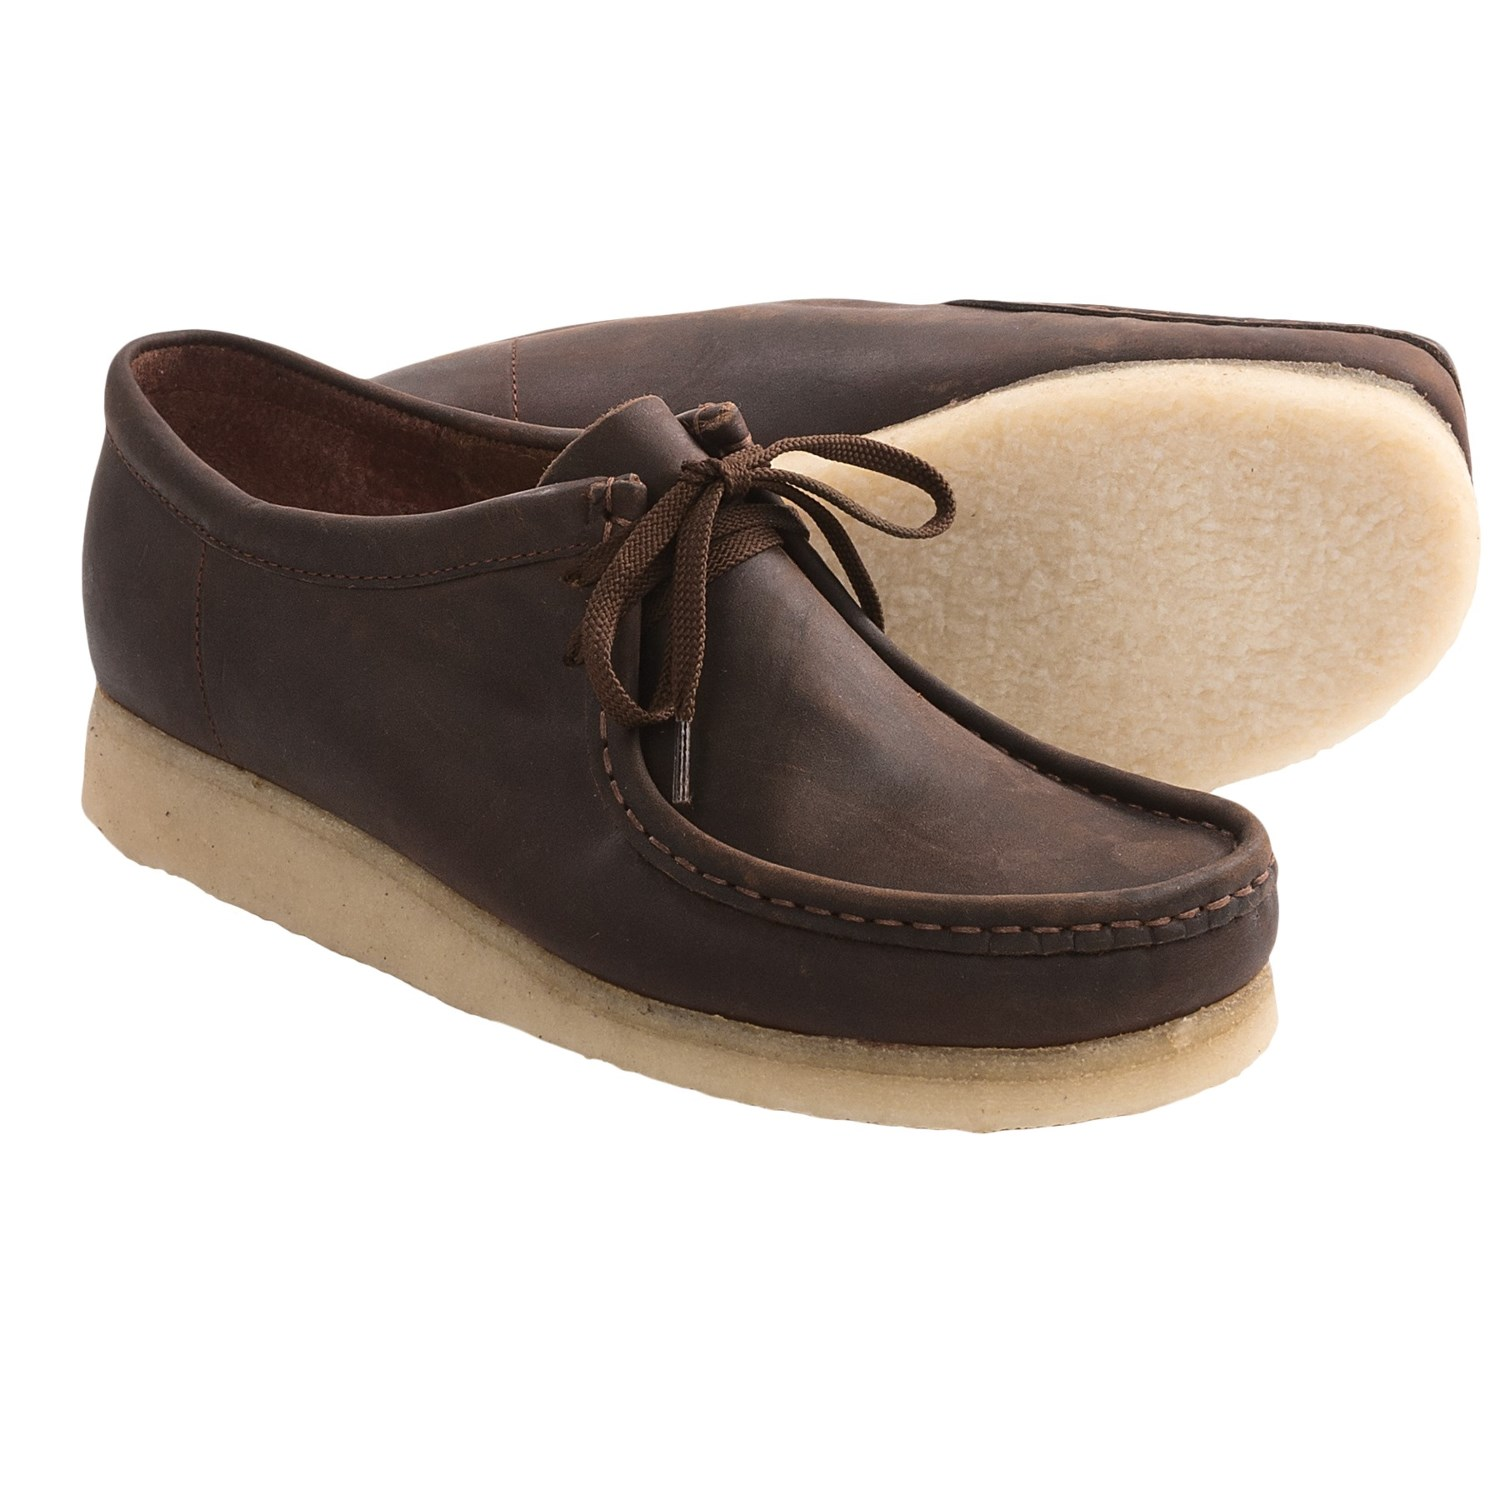 Clarks Wallabee Shoes - Leather (For Men) in Beeswax